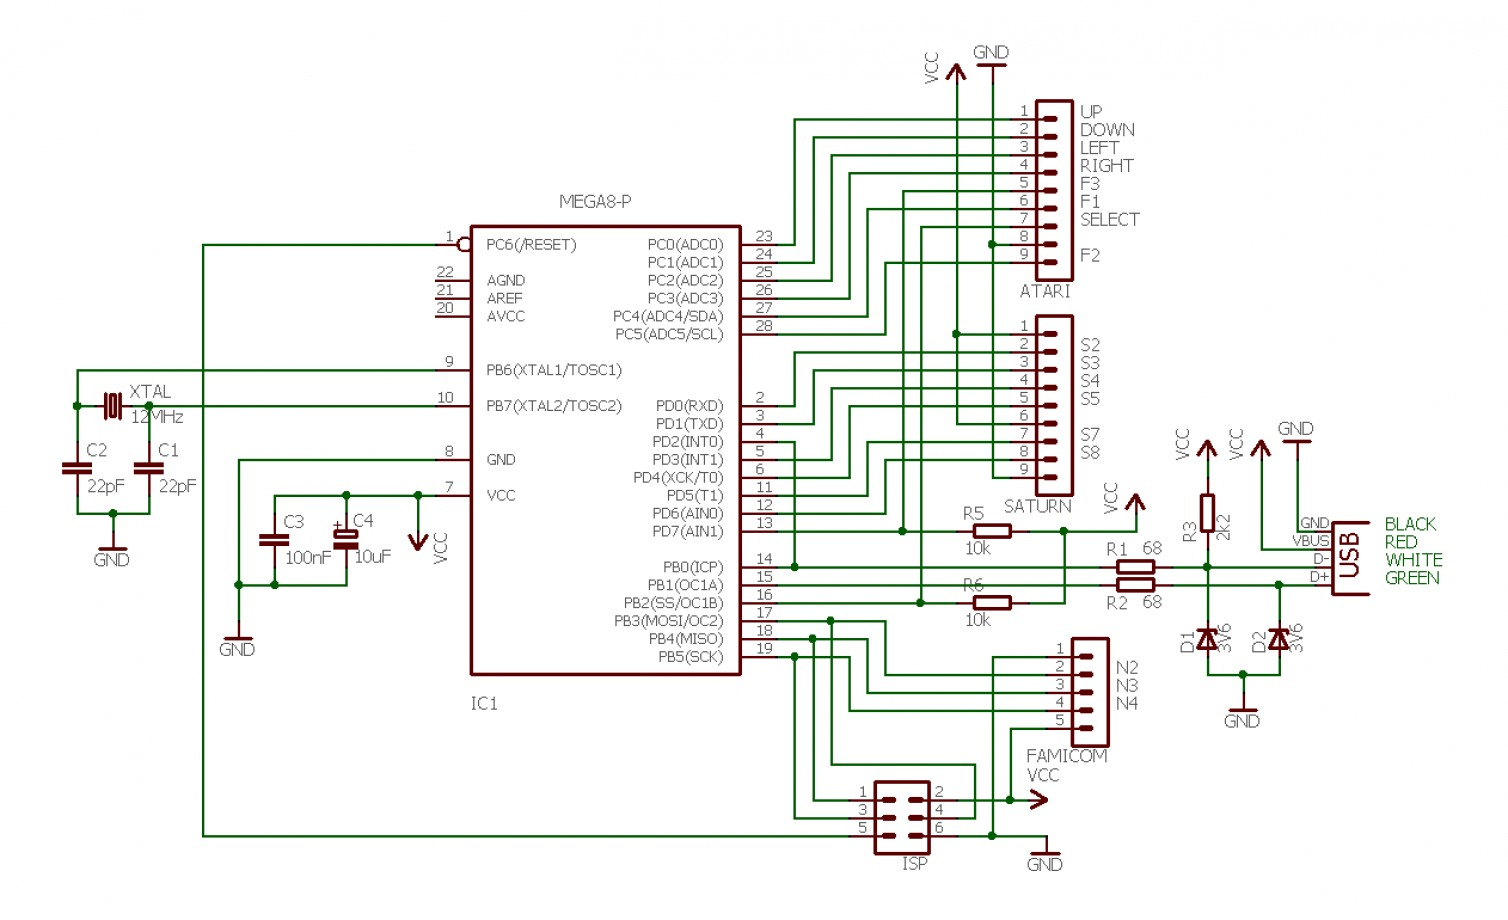 Ps2 Pump Diagram - Wiring Diagram Detailed - Ps2 Usb Wiring Diagram